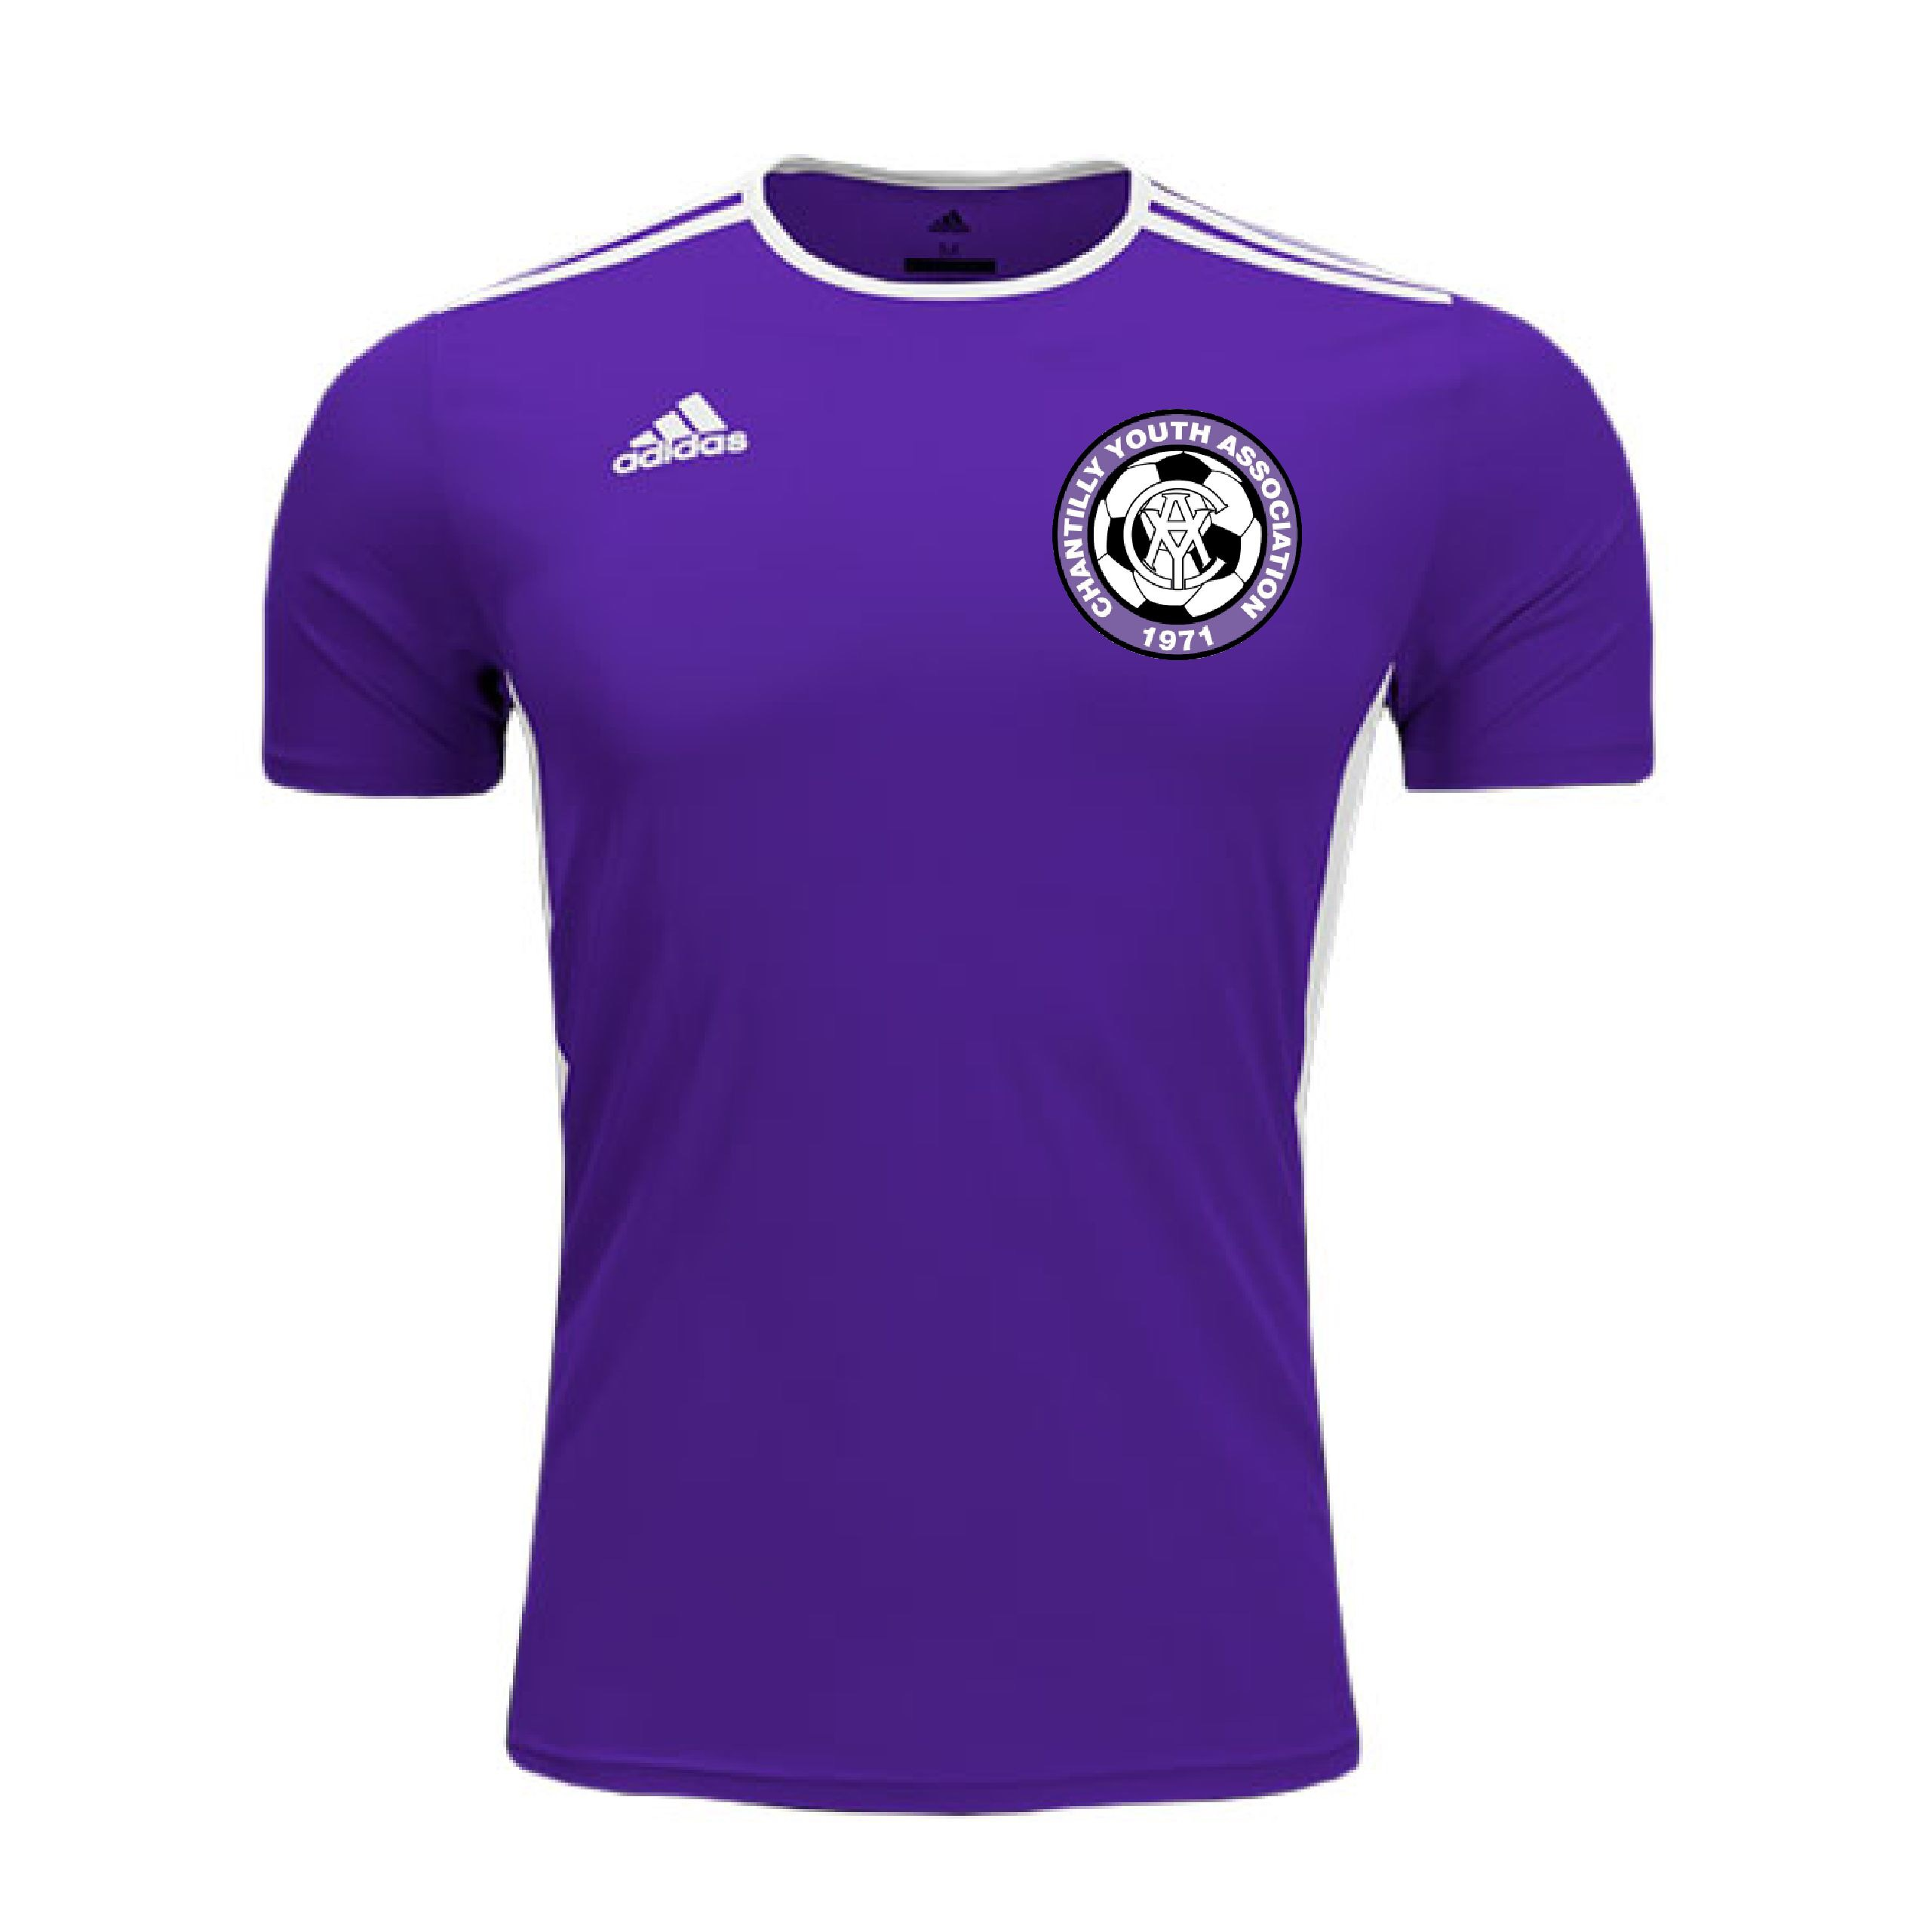 competitive price 3922f 33353 Recreational Uniforms | CYA Soccer